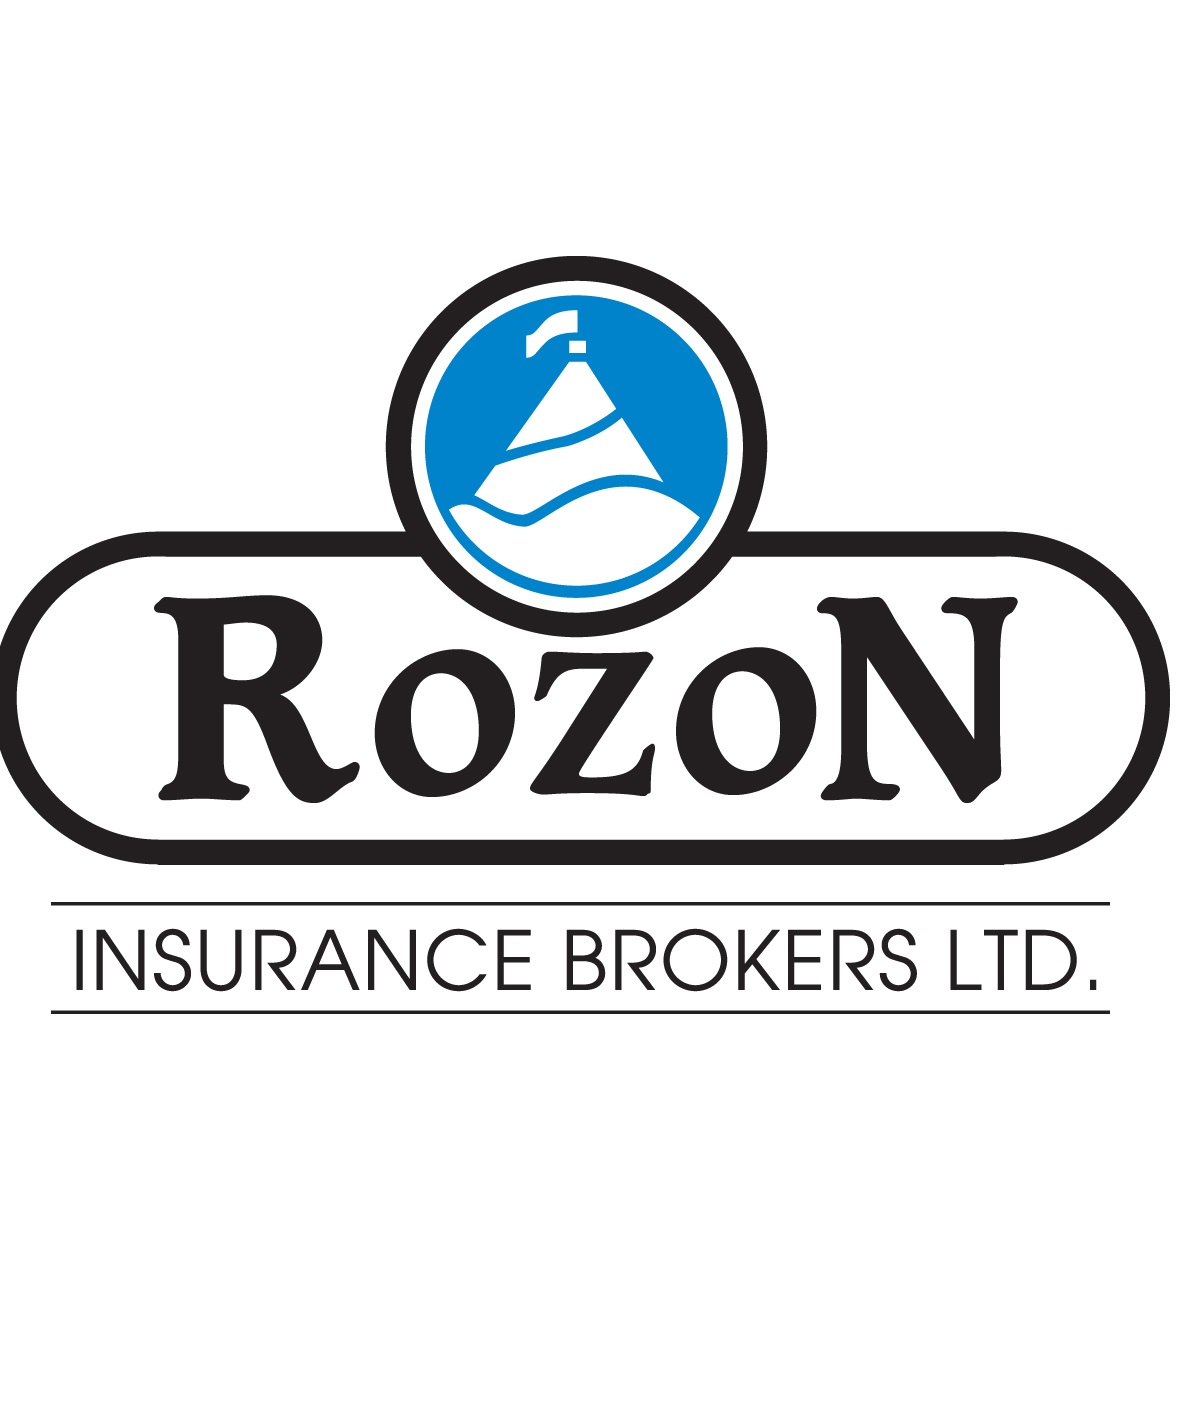 TOP INSURANCE WORKPLACE: ROZON INSURANCE BROKERS